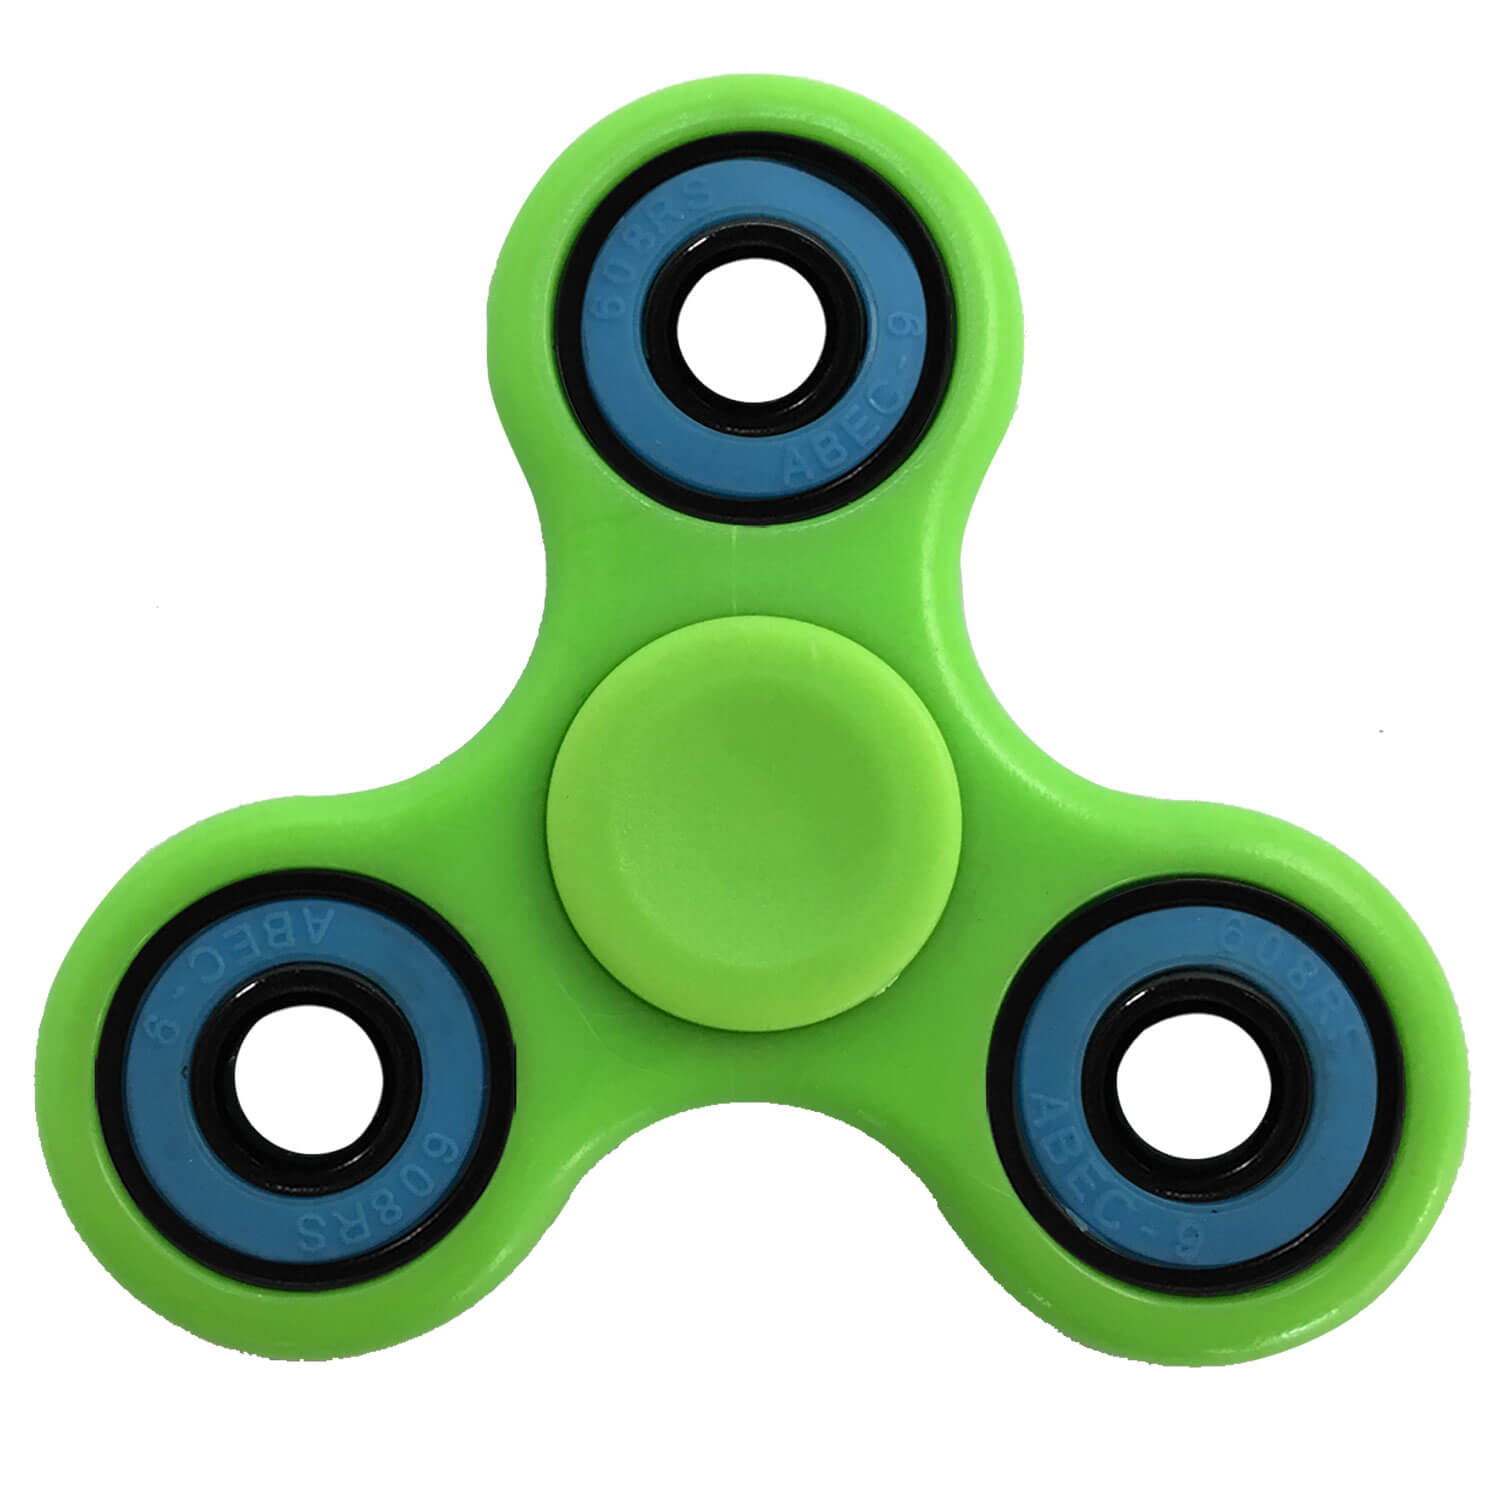 Fidget spinner clipart. What s the deal